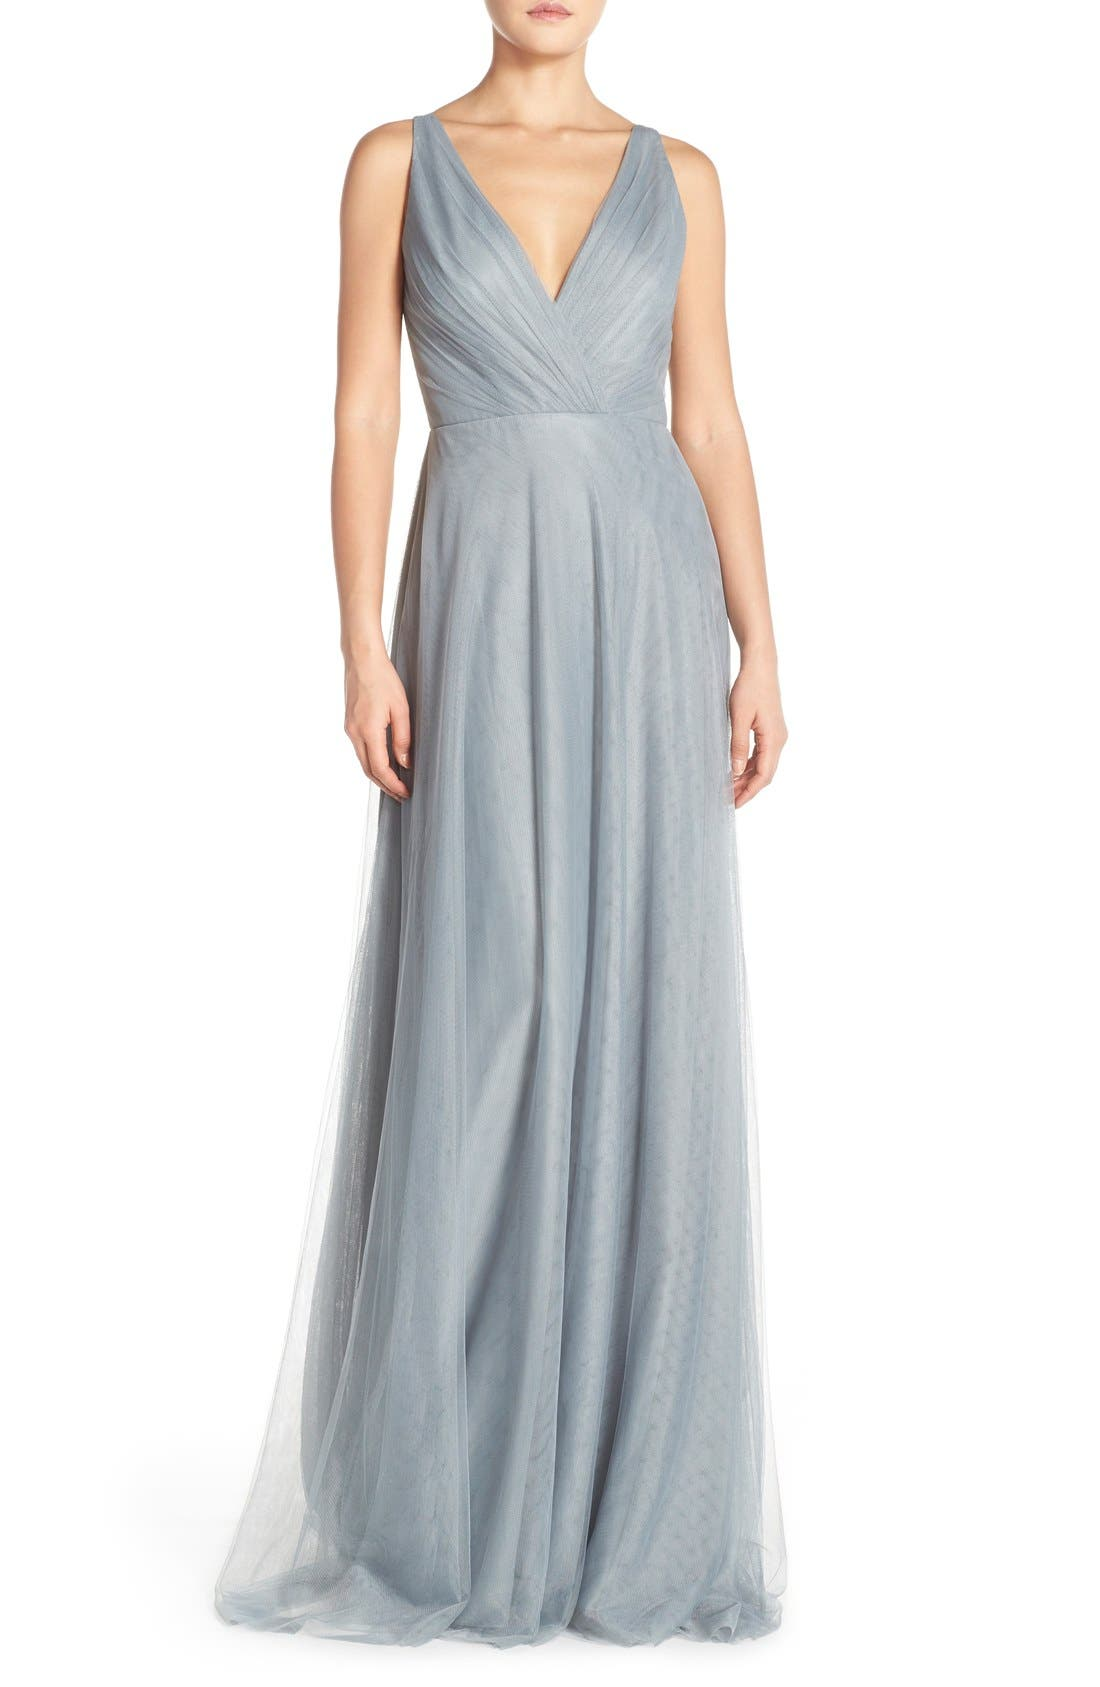 Monique Lhuillier Bridesmaids Back Cutout Pleat Tulle Gown